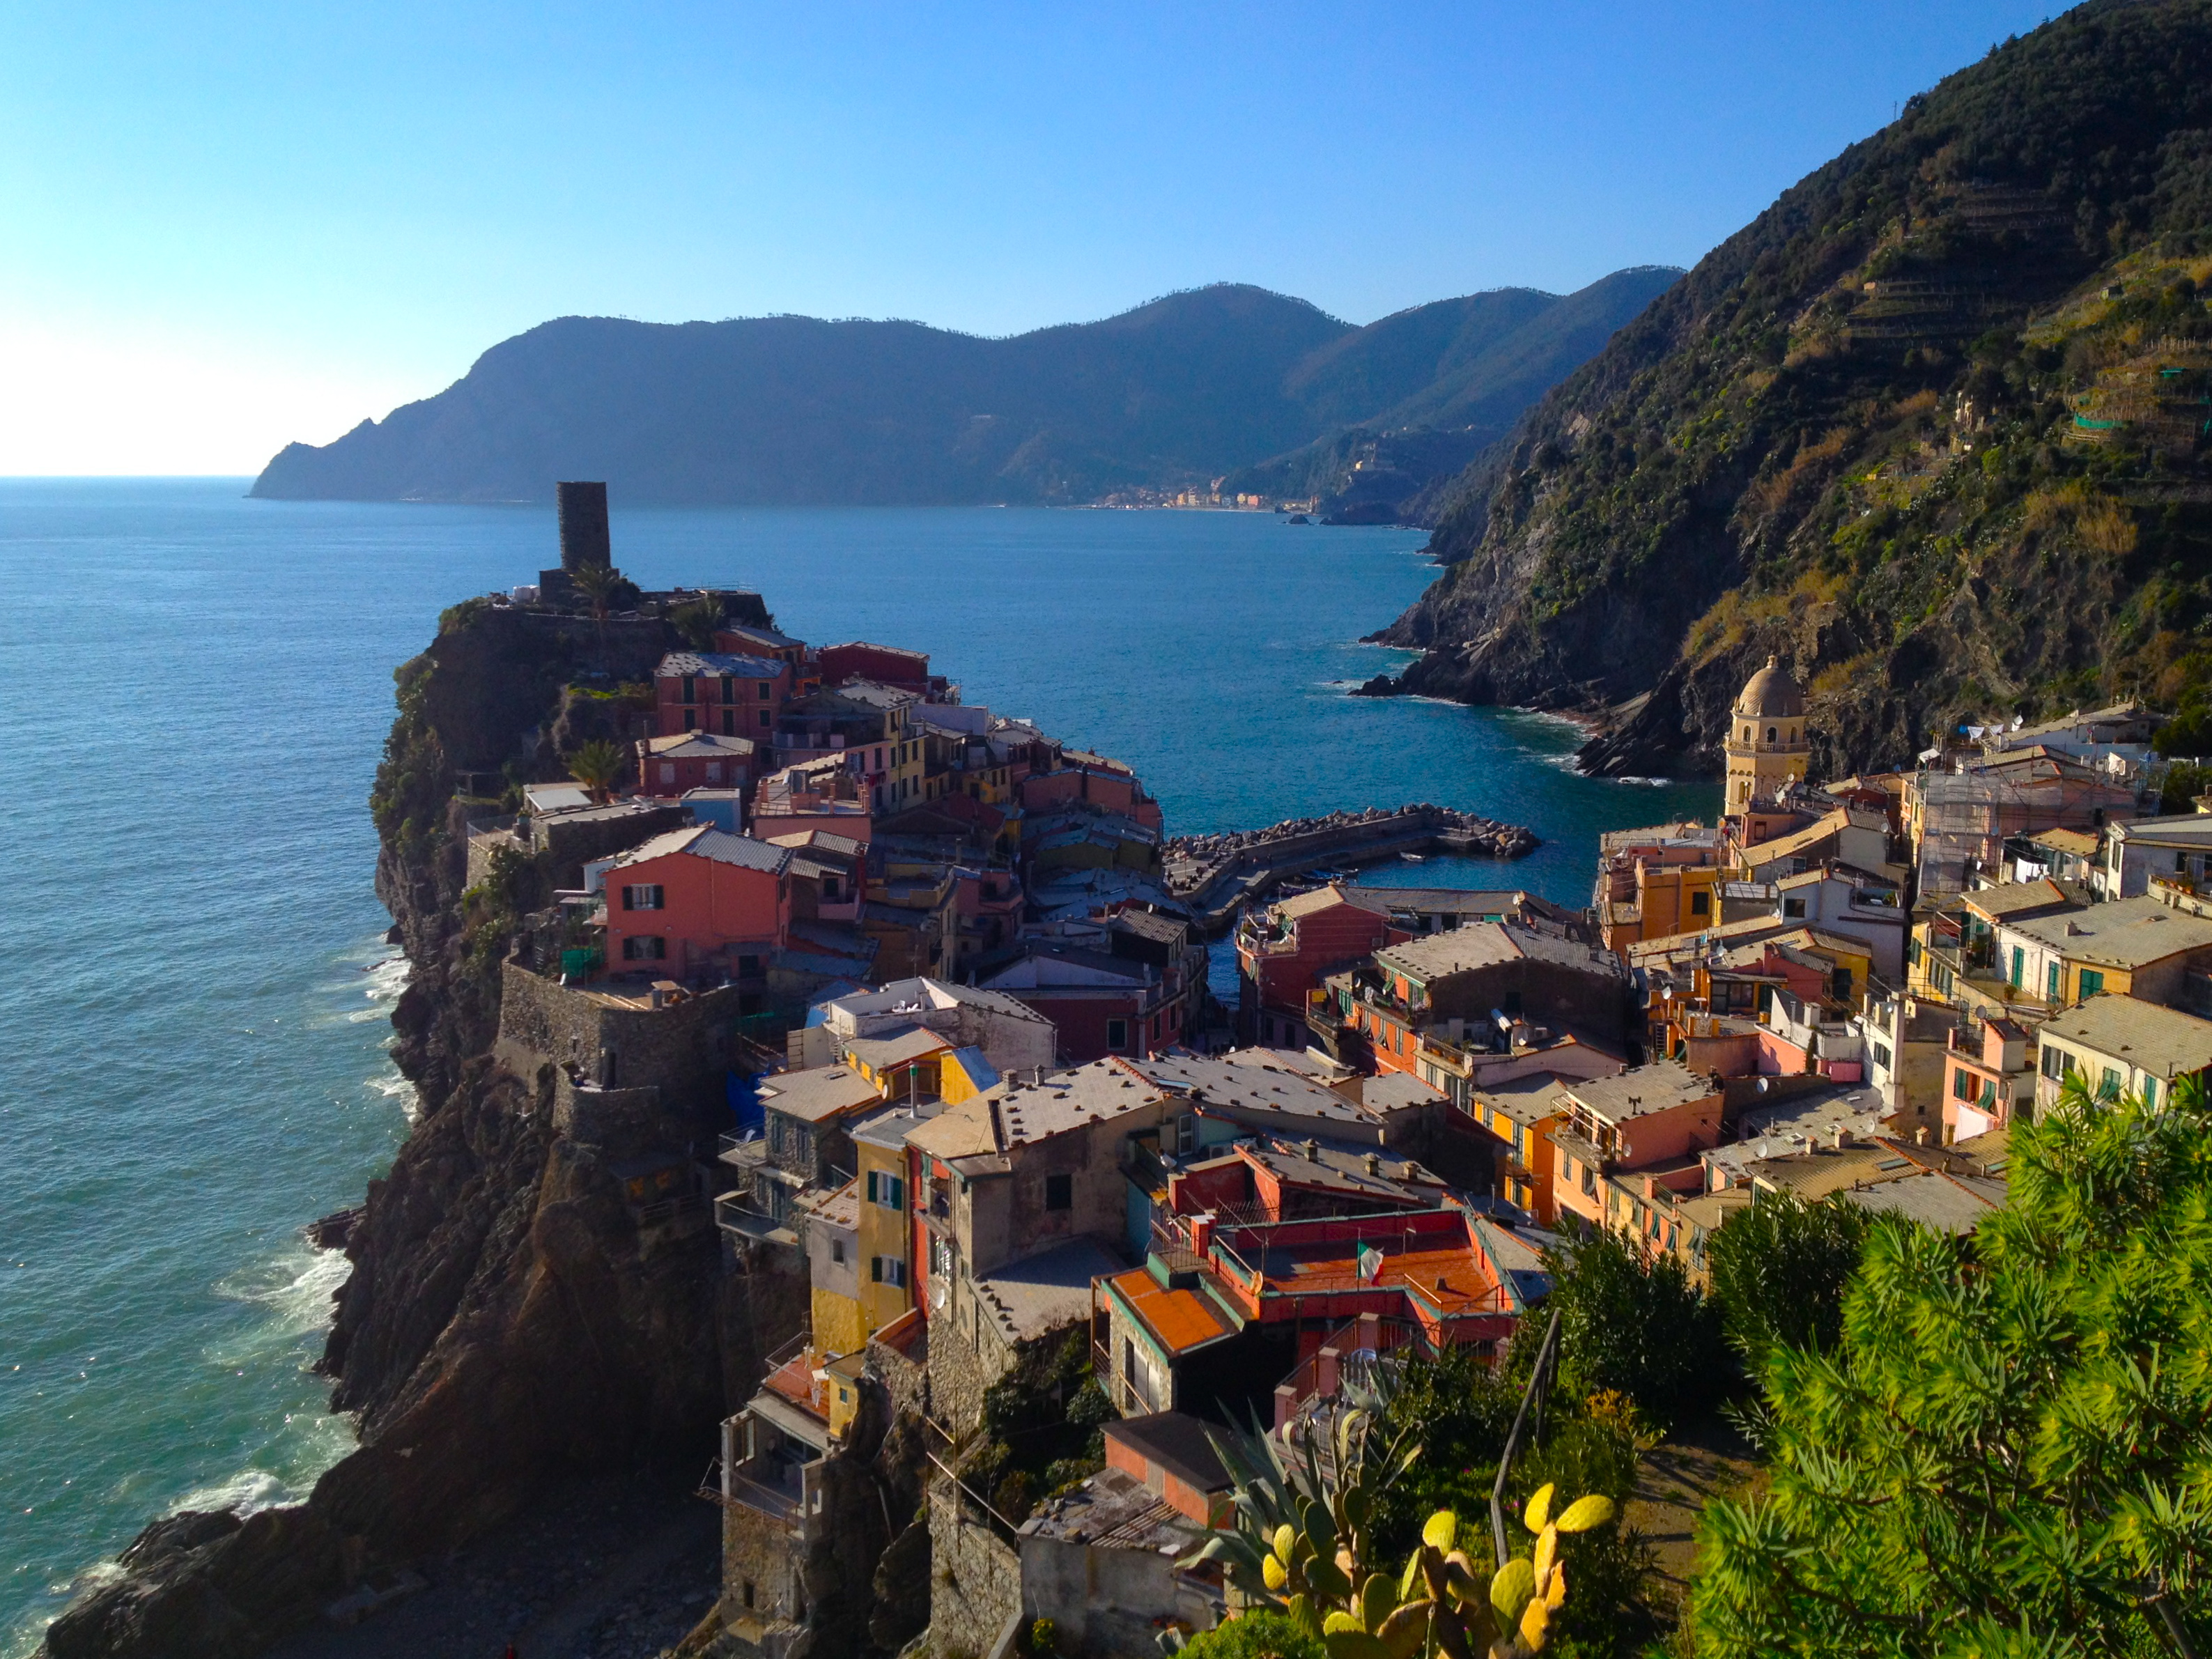 Looking out on Vernazza